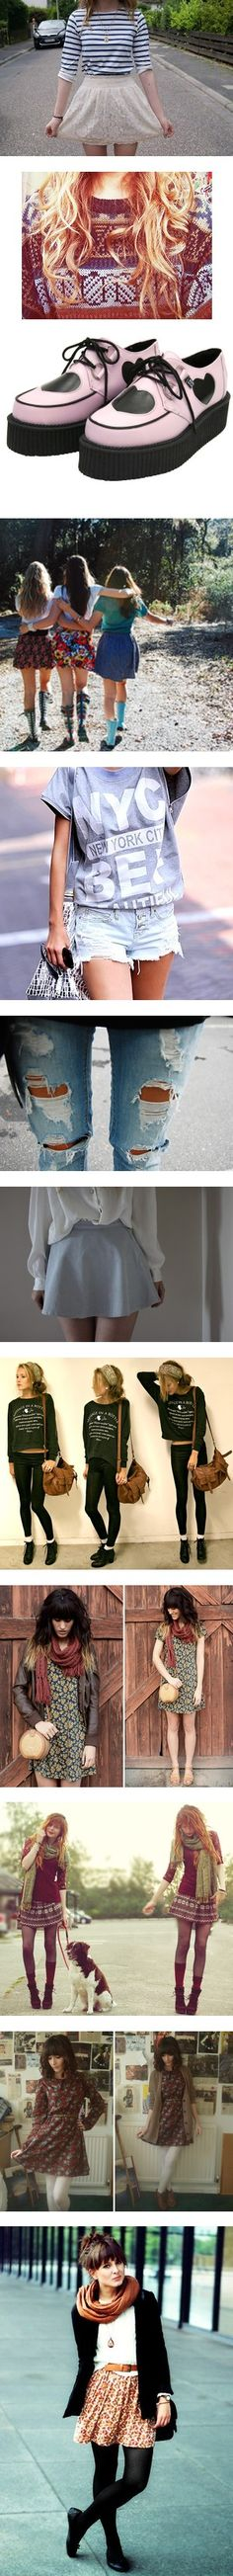 """""""college outfit ideas 3"""" by lazydayzzz ❤ liked on Polyvore"""